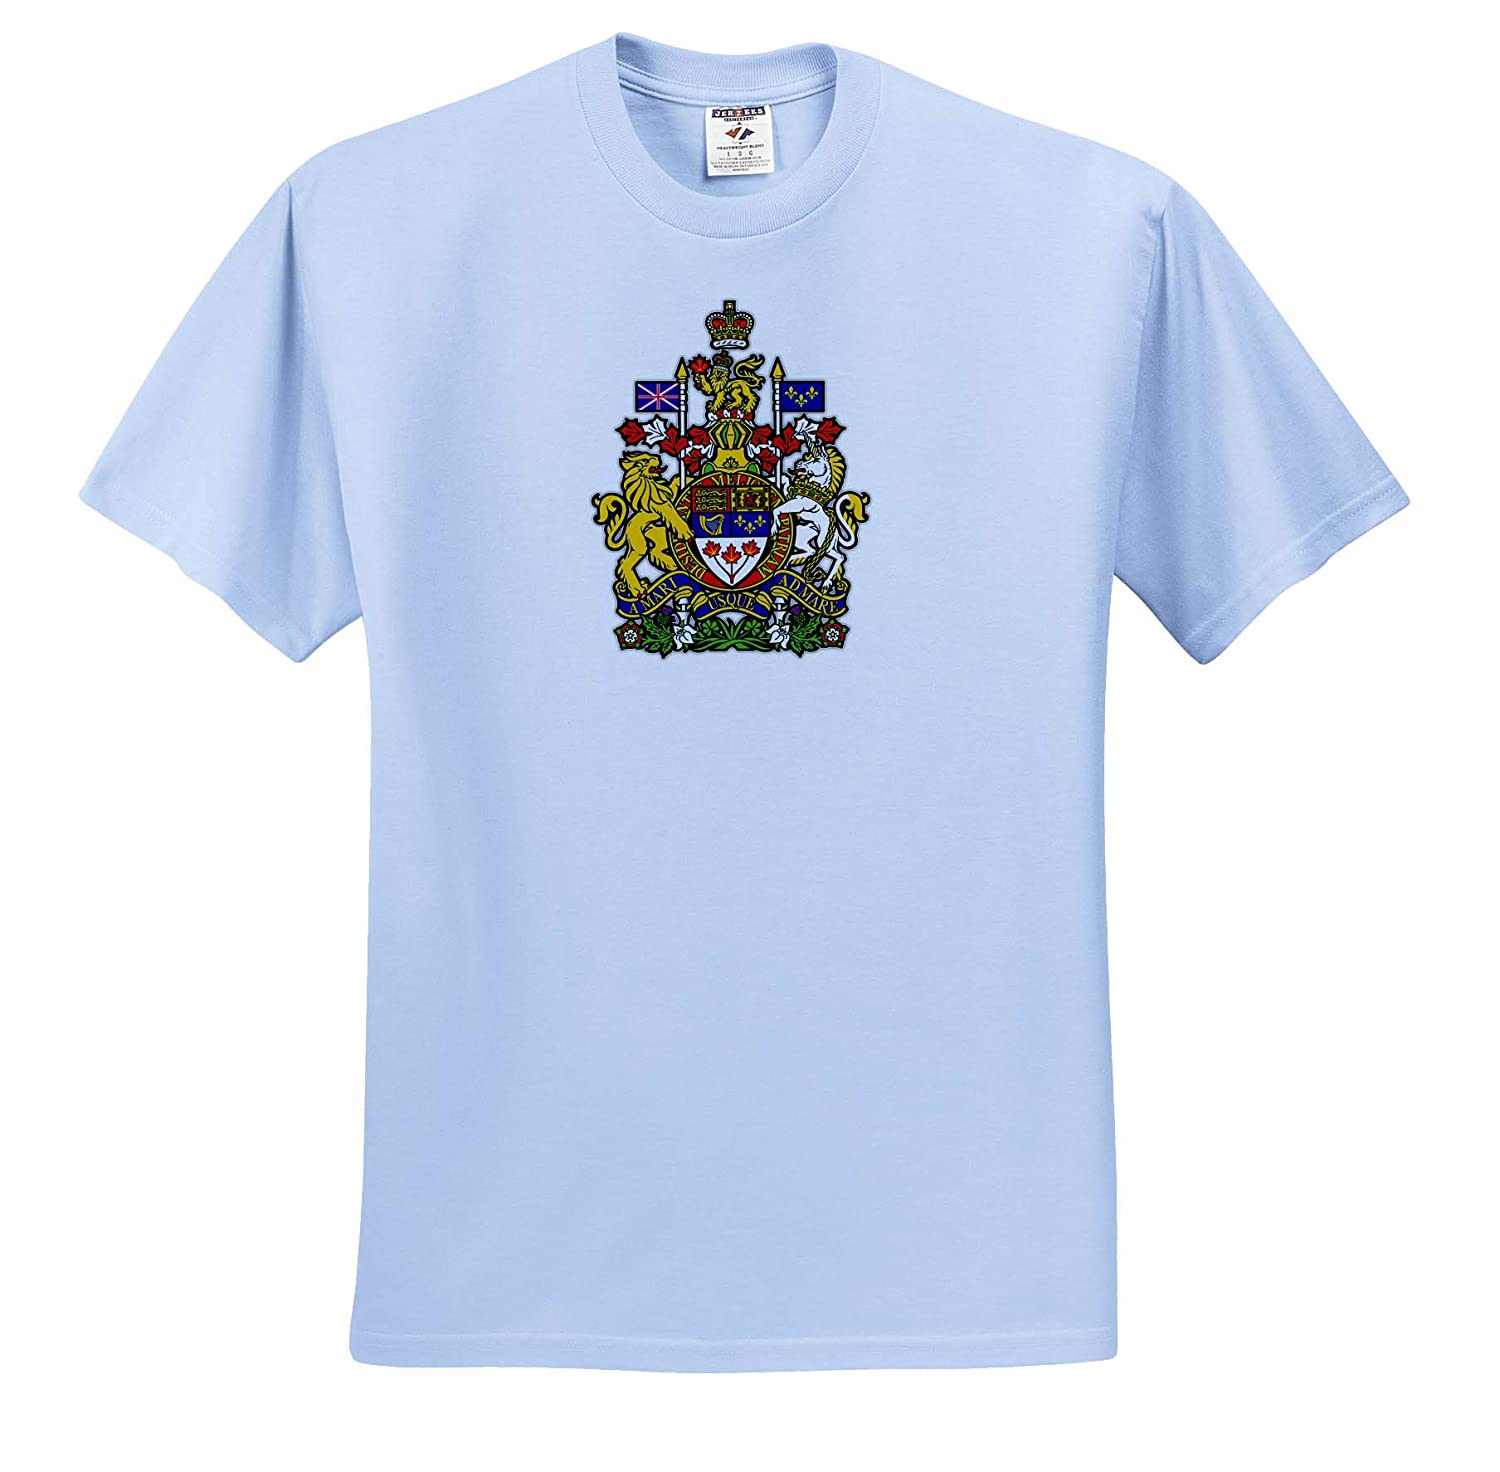 3dRose Carsten Reisinger ts/_318852 Illustrations Canada Coat of Arms National Symbol Icon Canadian Adult T-Shirt XL